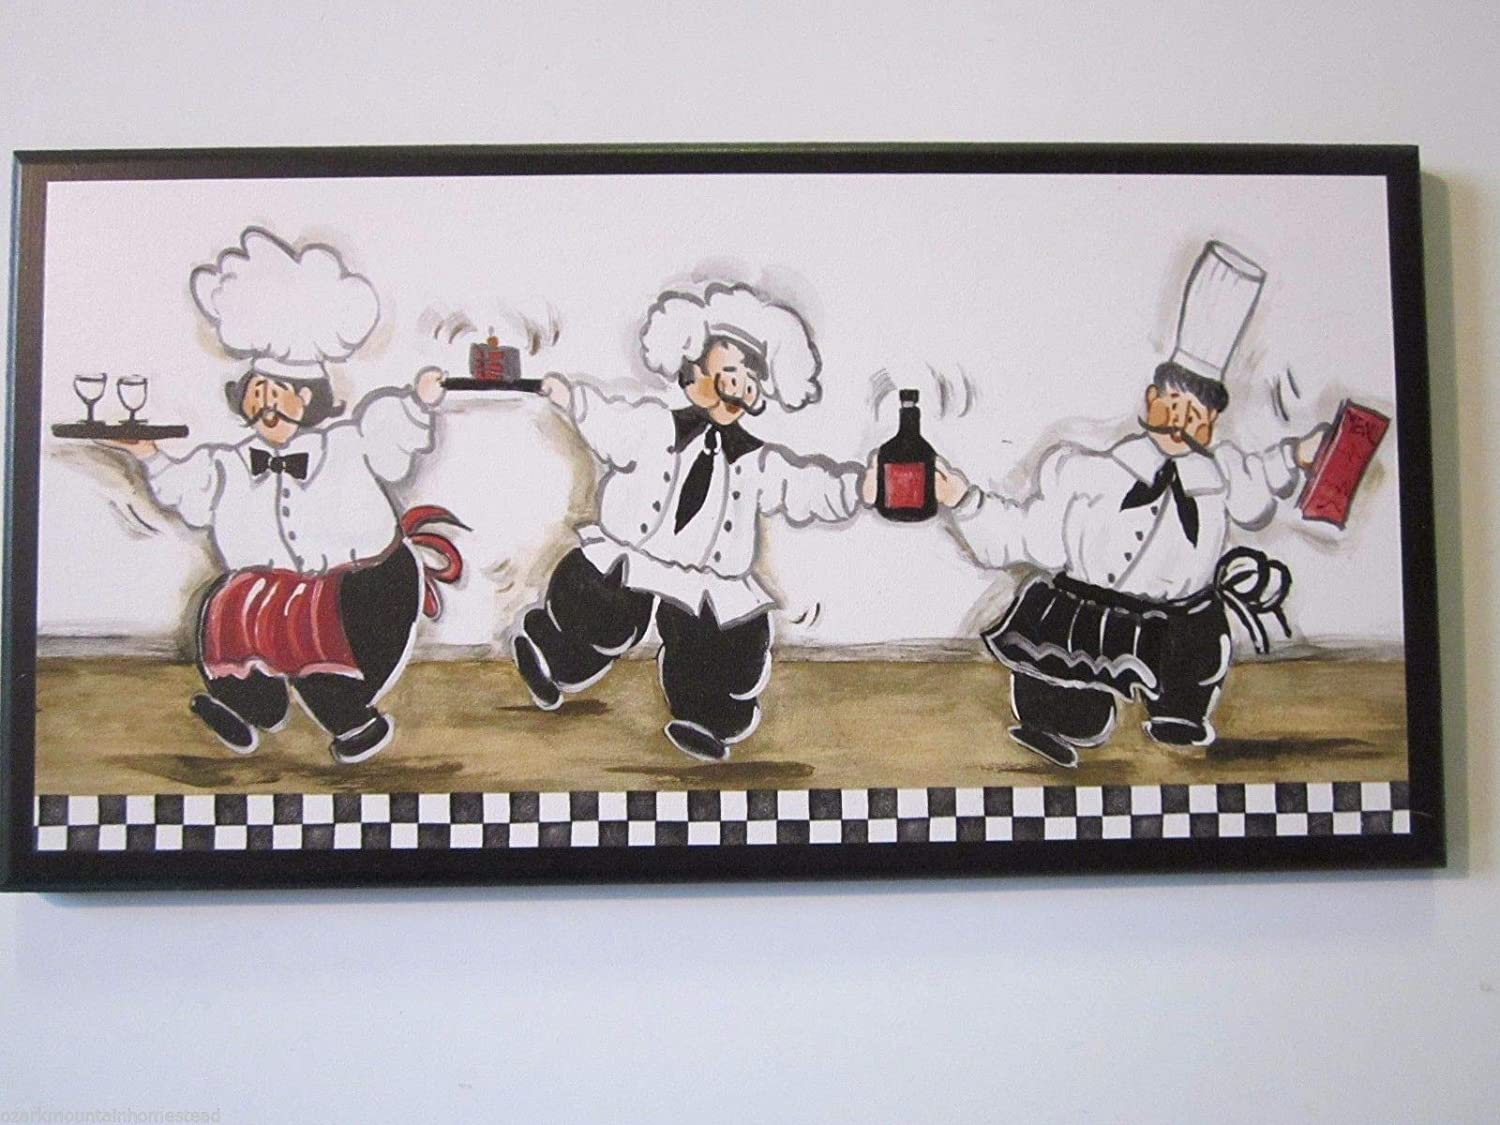 Black And White Kitchen Wall Decor Amazon.com: Chef Kitchen Wall Decor Plaque, French Chefs Sign, Dancing with  Wine, White Black Red: Home u0026 Kitchen